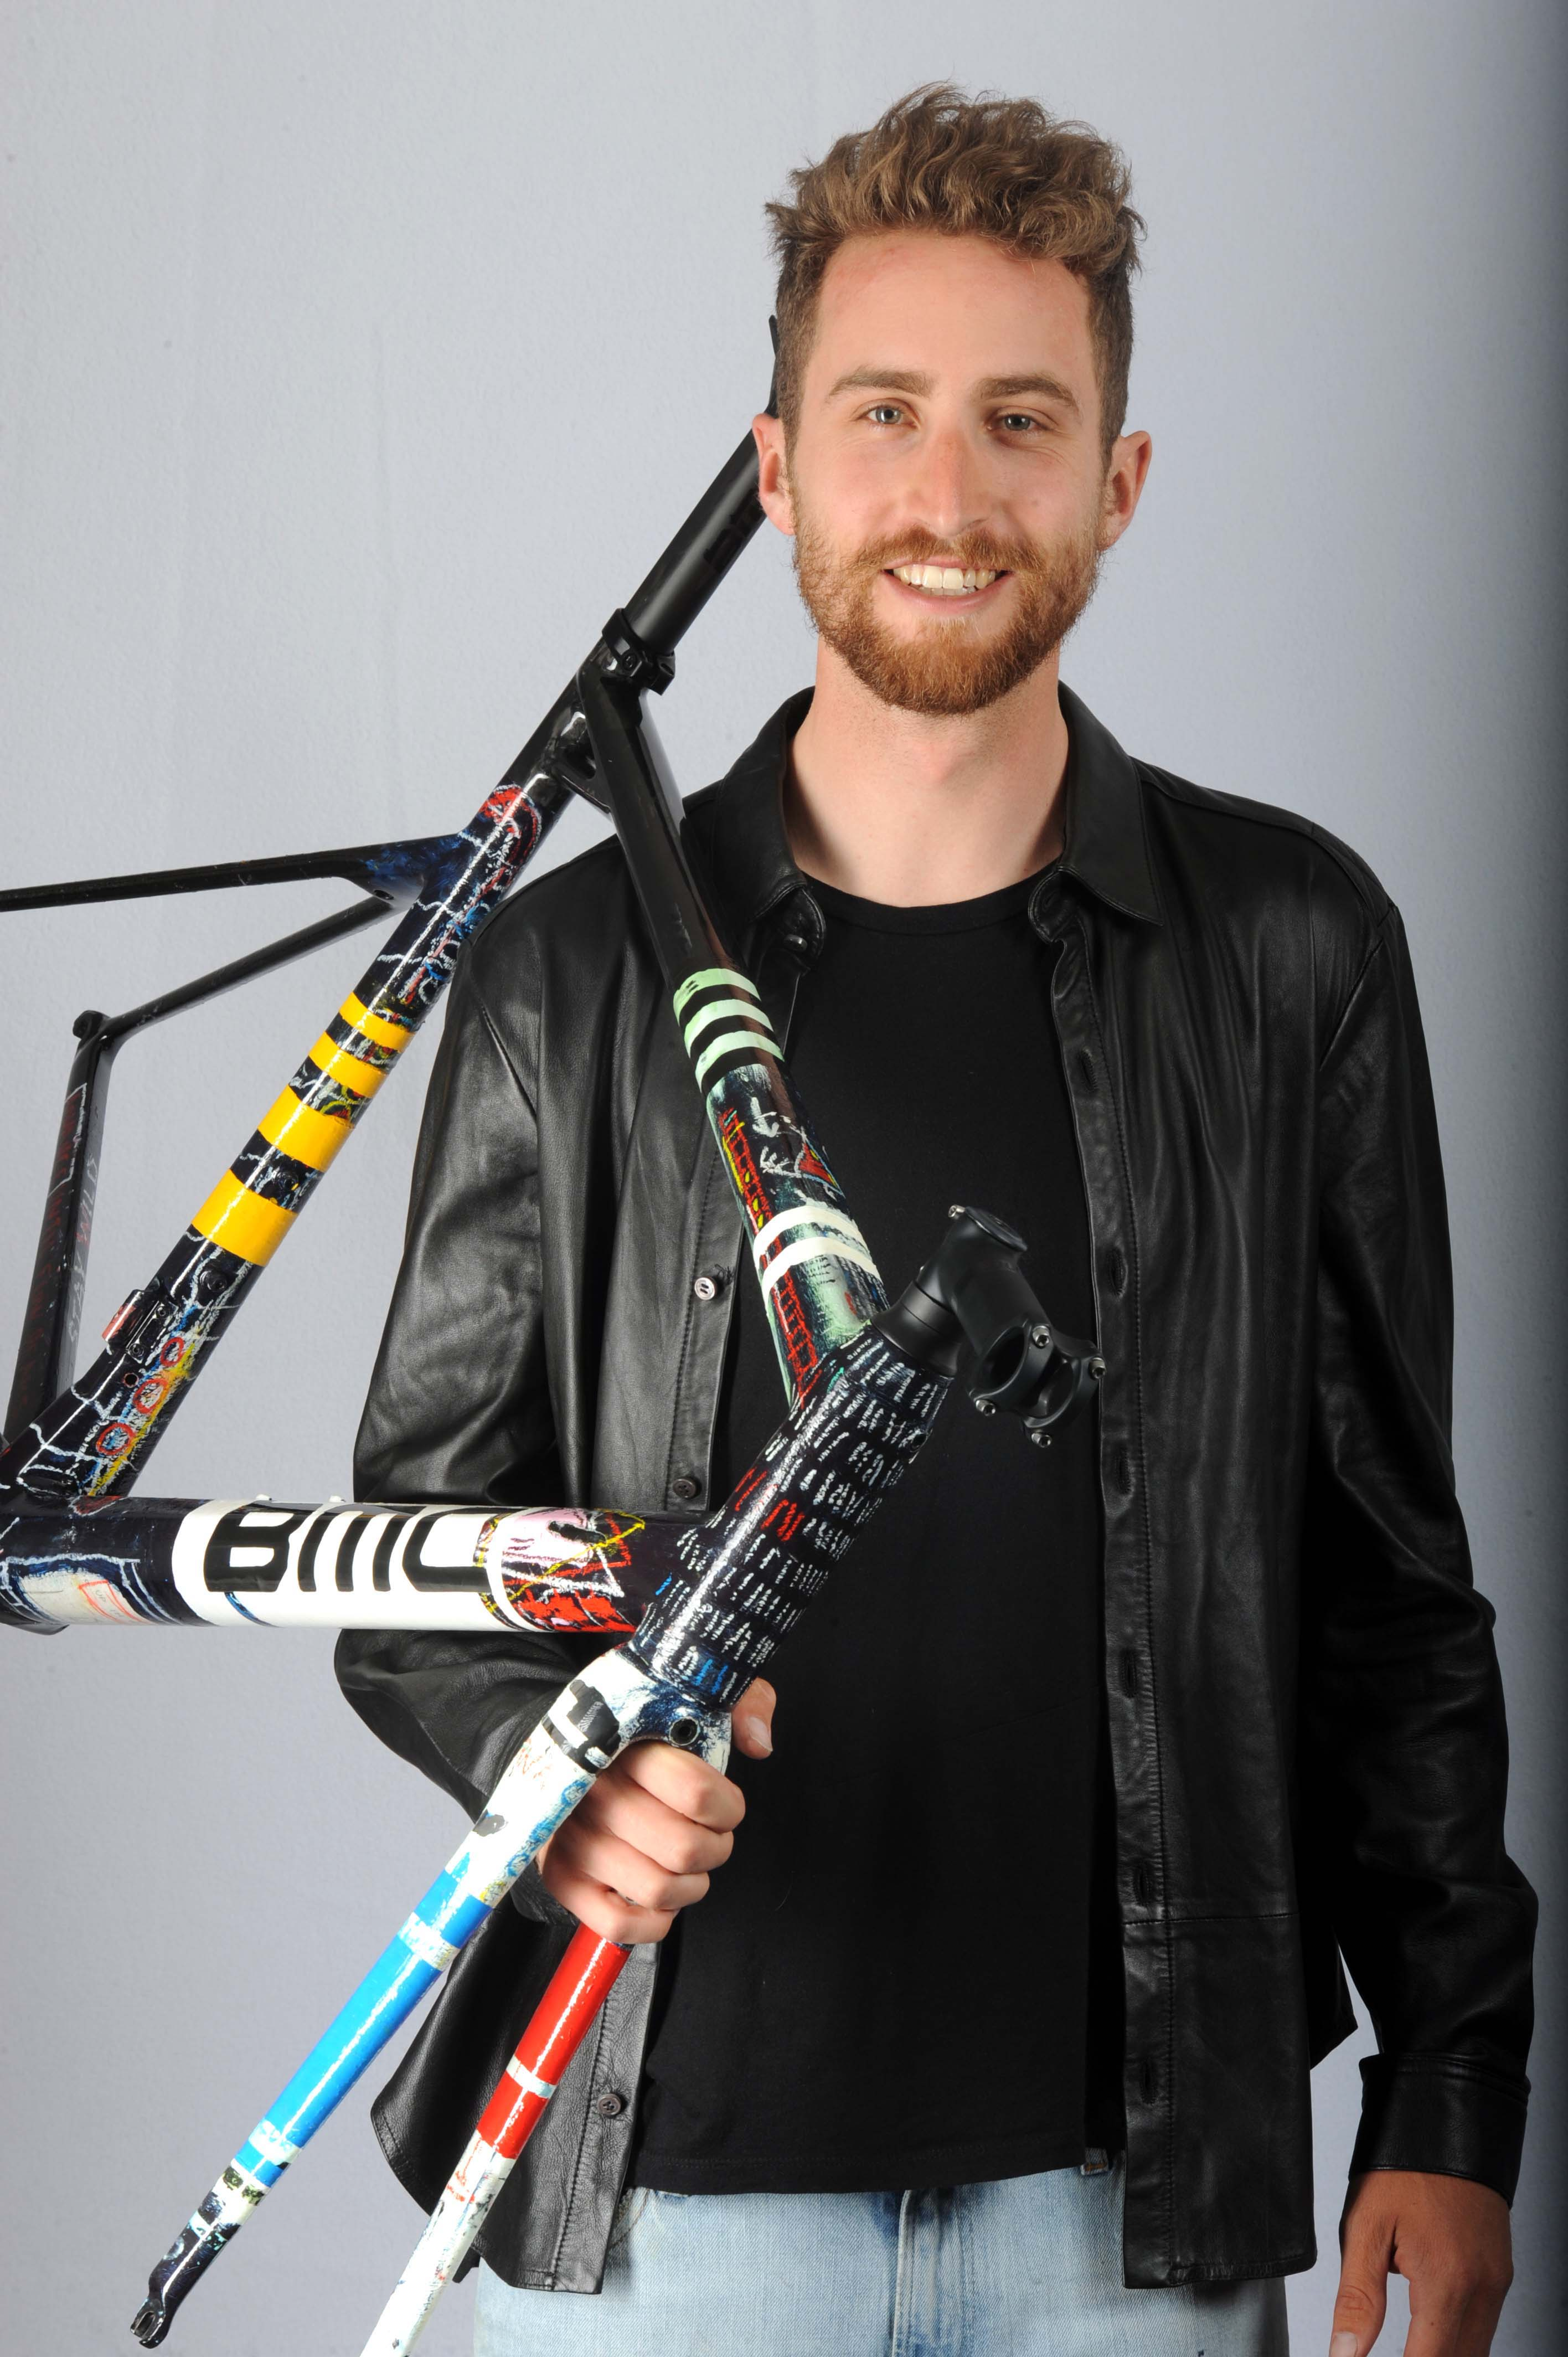 BMC bike painted by Taylor Phinney to be raffled for Parkinson's charity